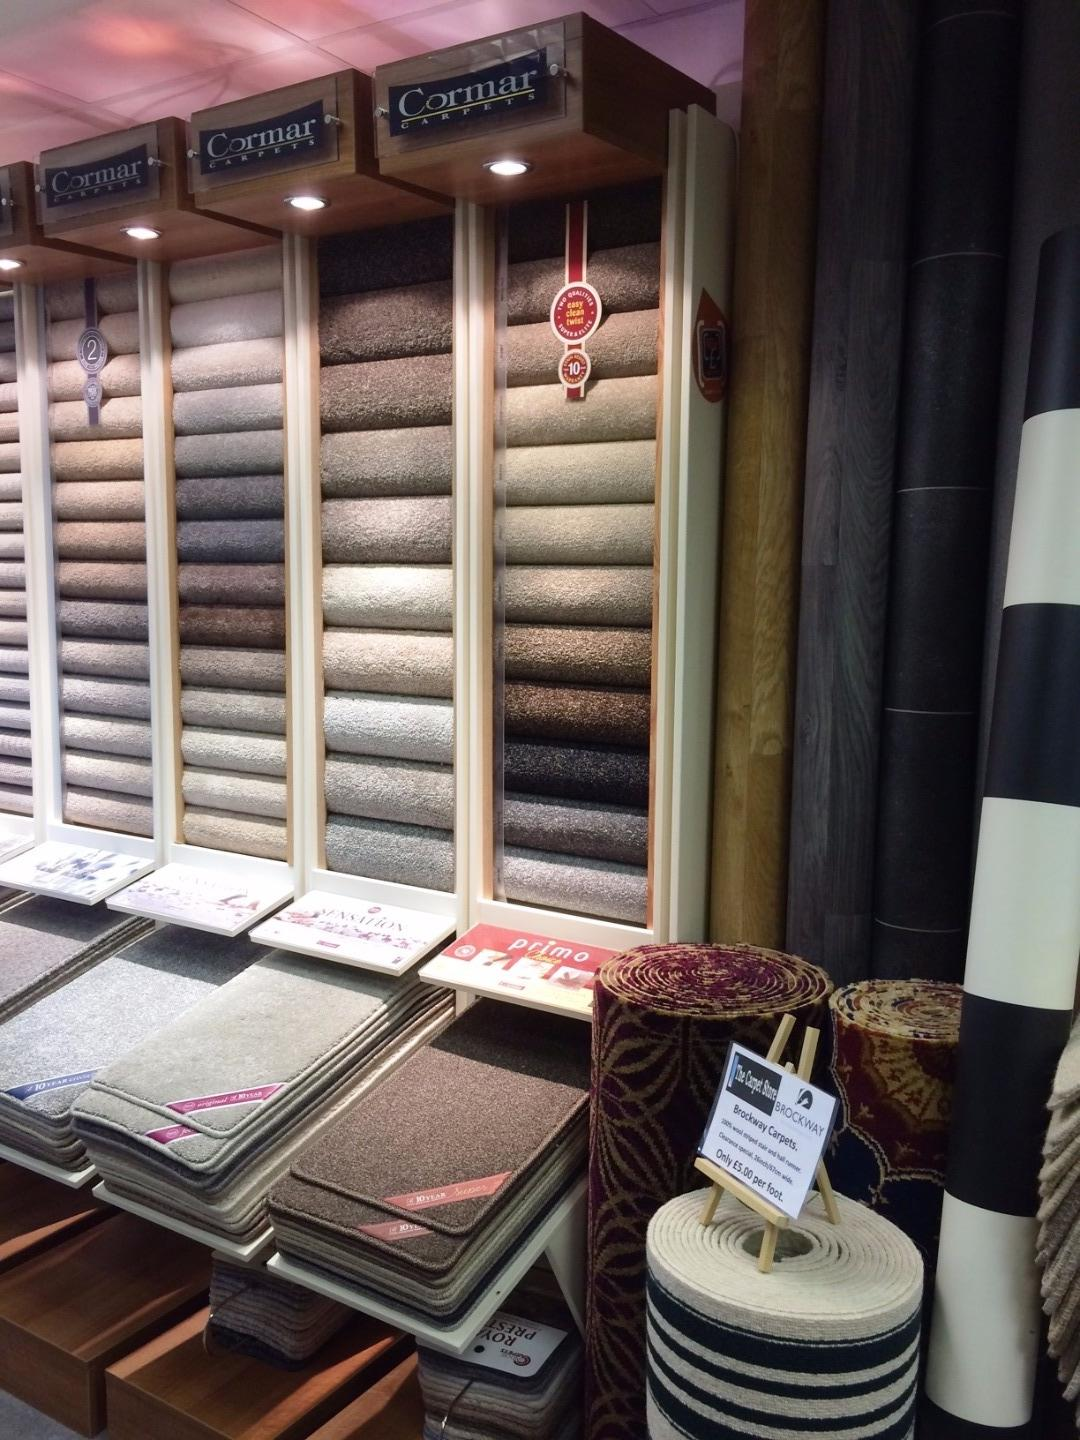 Range of choice at The Carpet Store Poulton